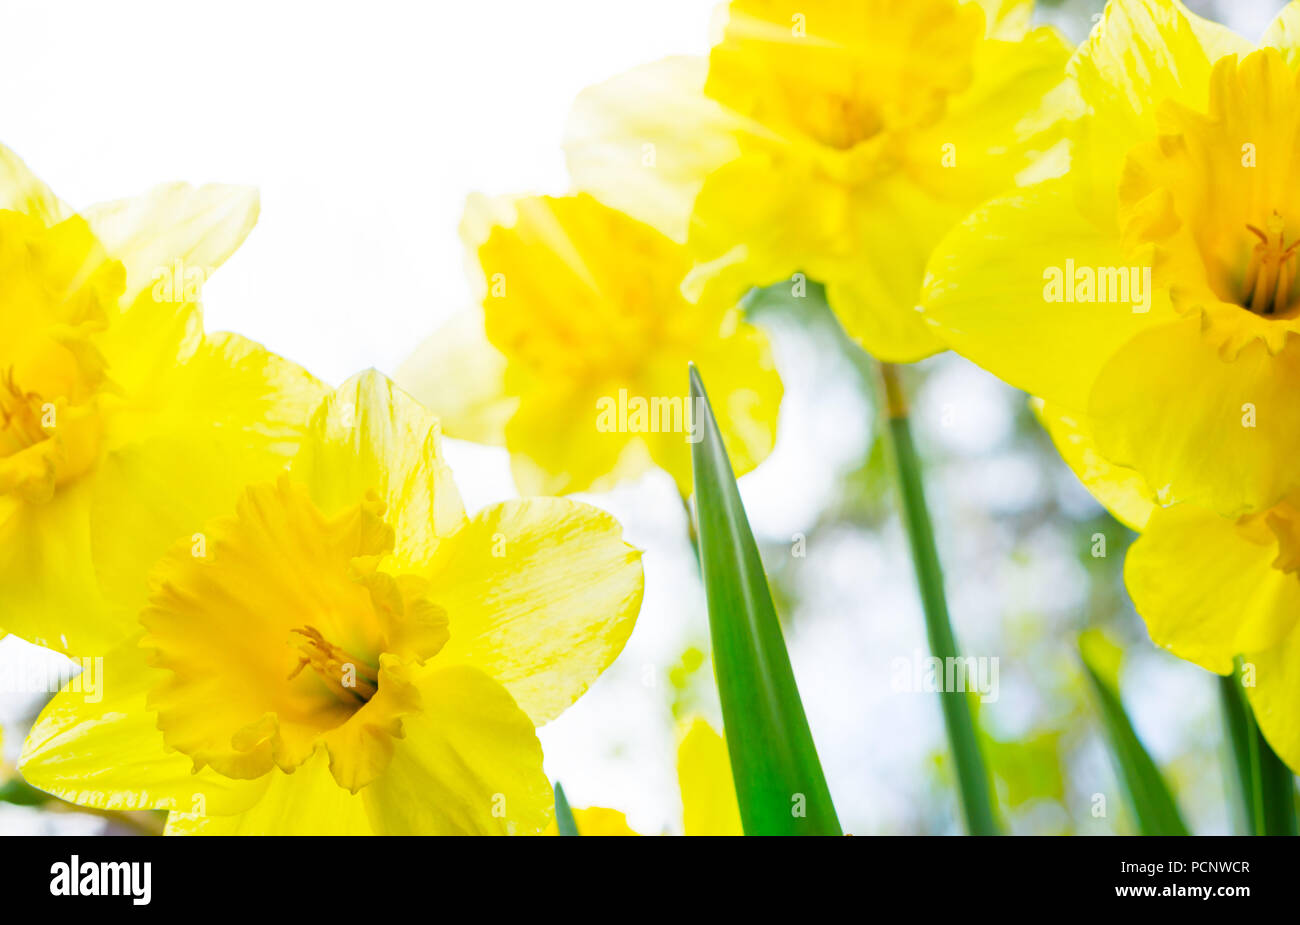 Jonquils in the back light,daffodils Stock Photo